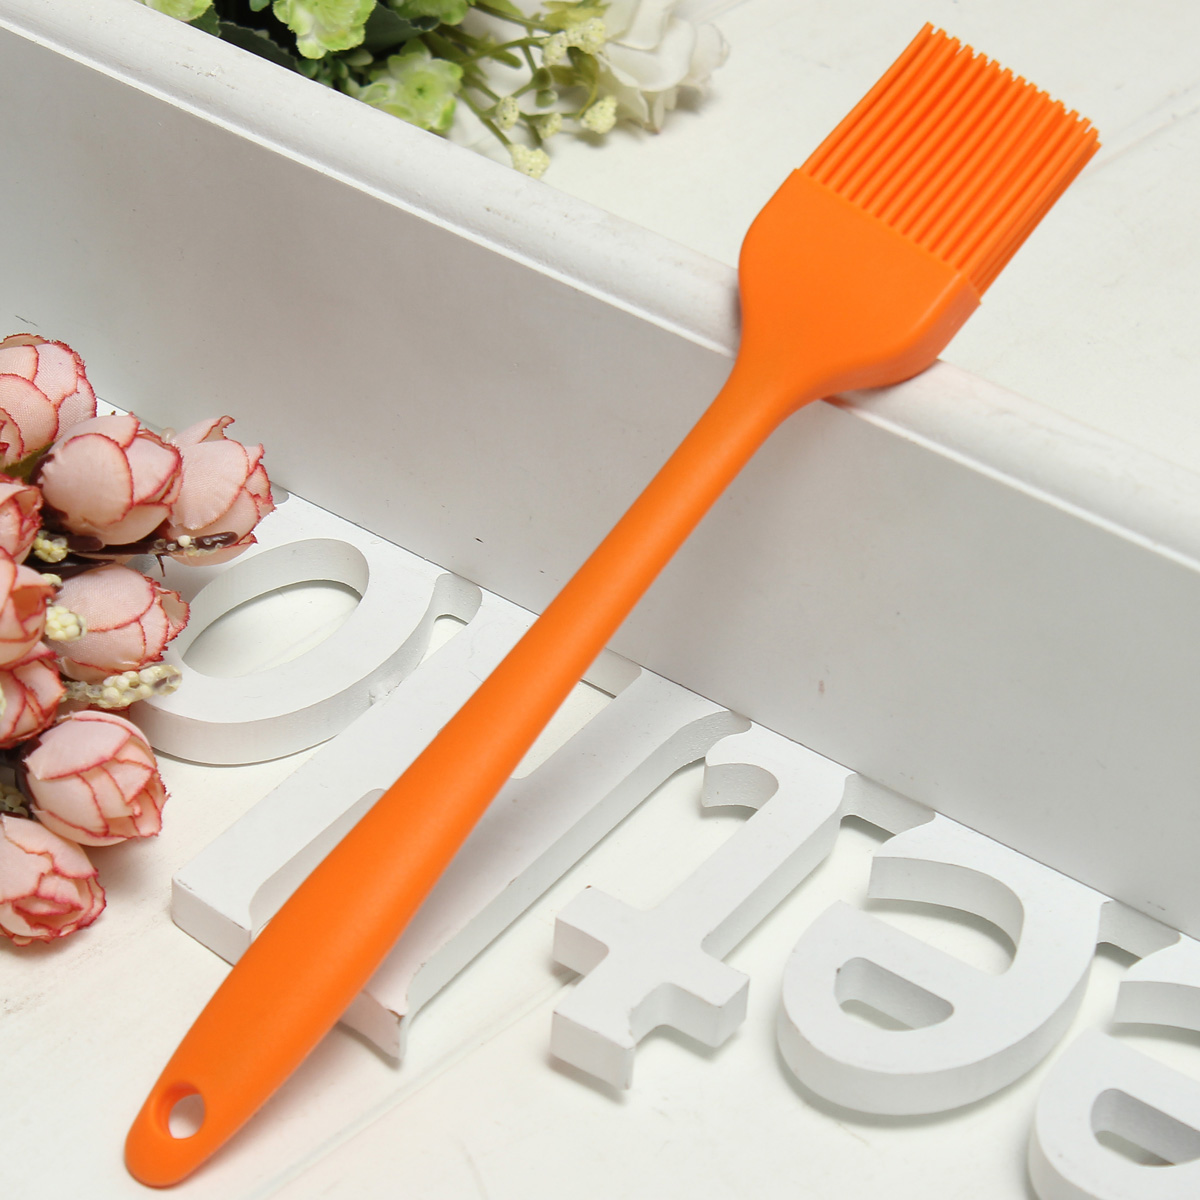 Multifunction Silicone BBQ Pastry Brush Barbecue Baking Tool Brushes